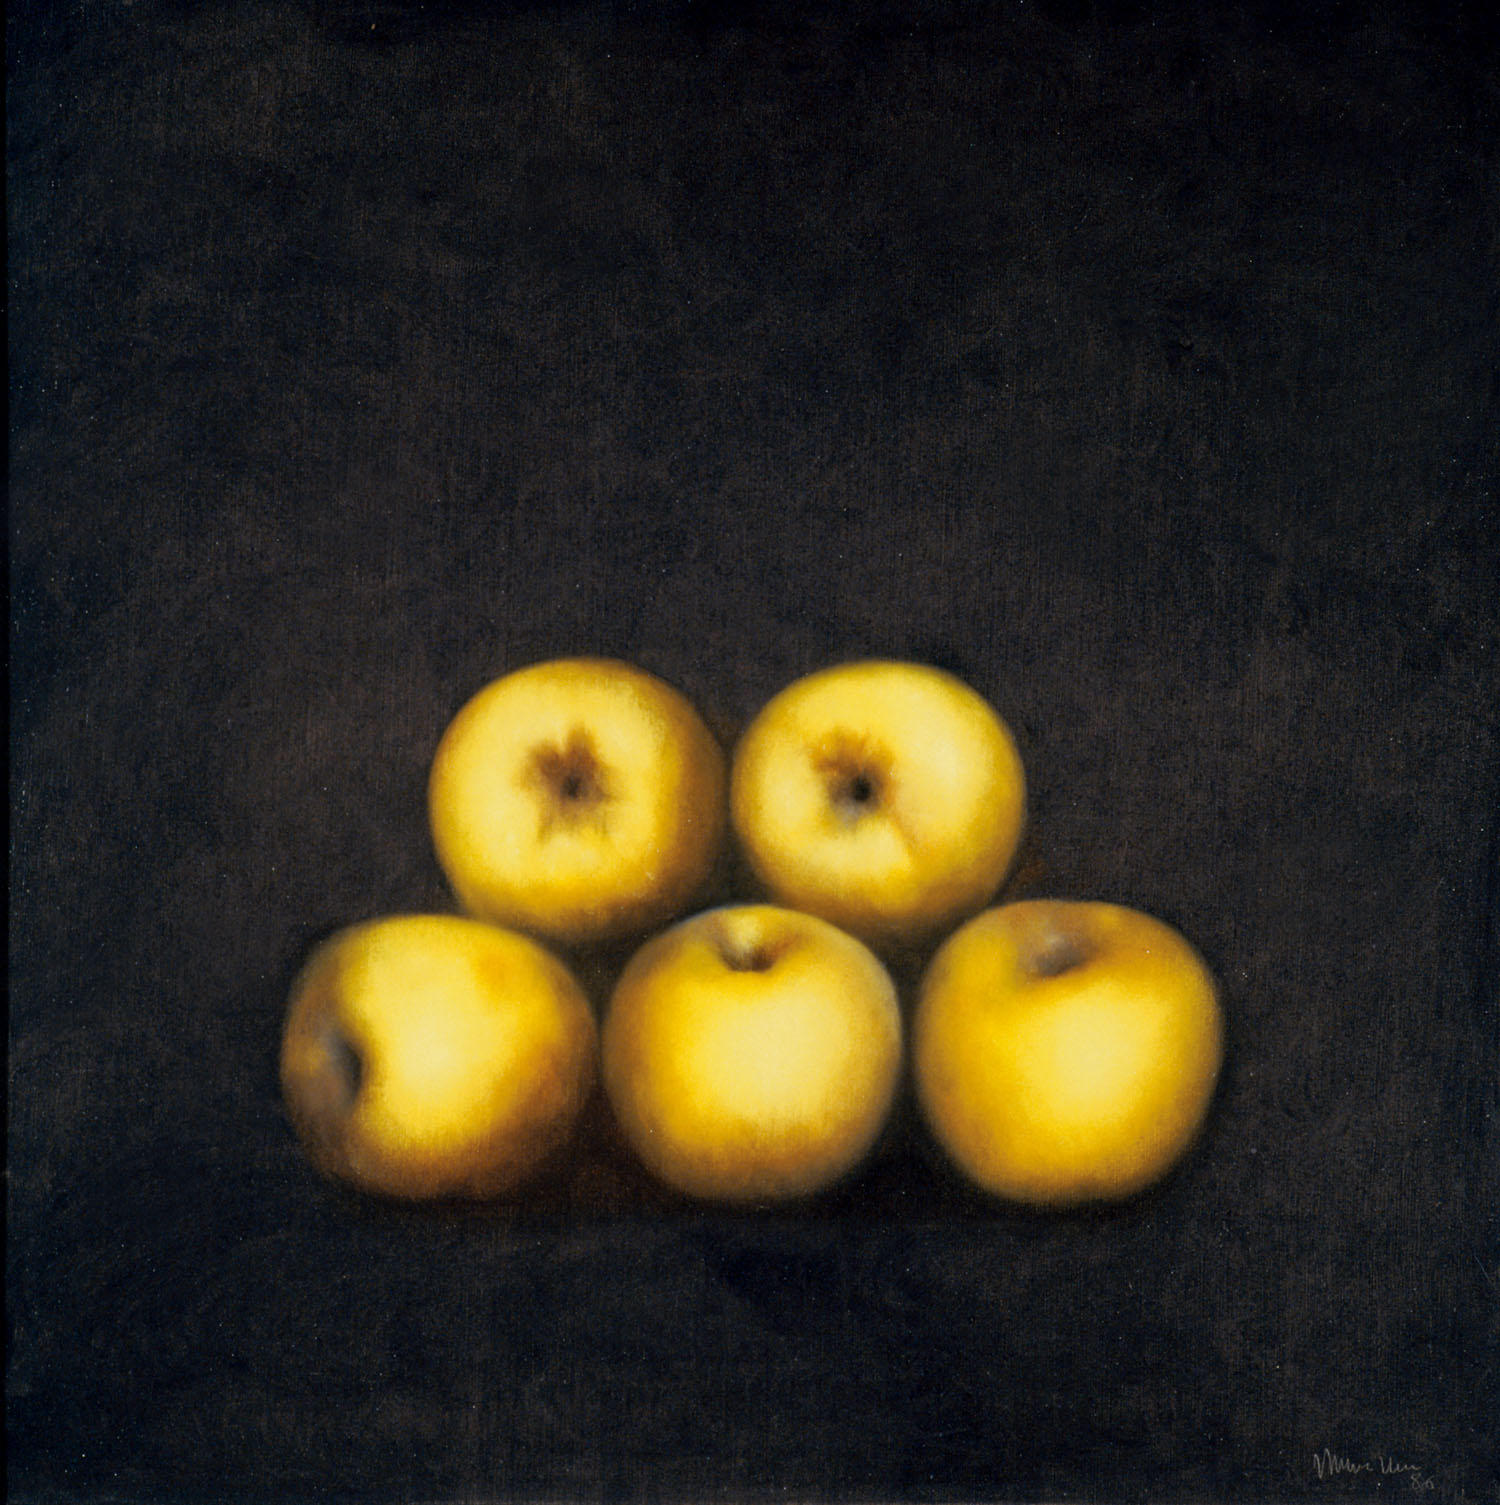 Fruits, 1986, oil on canvas, cm 100 x 100